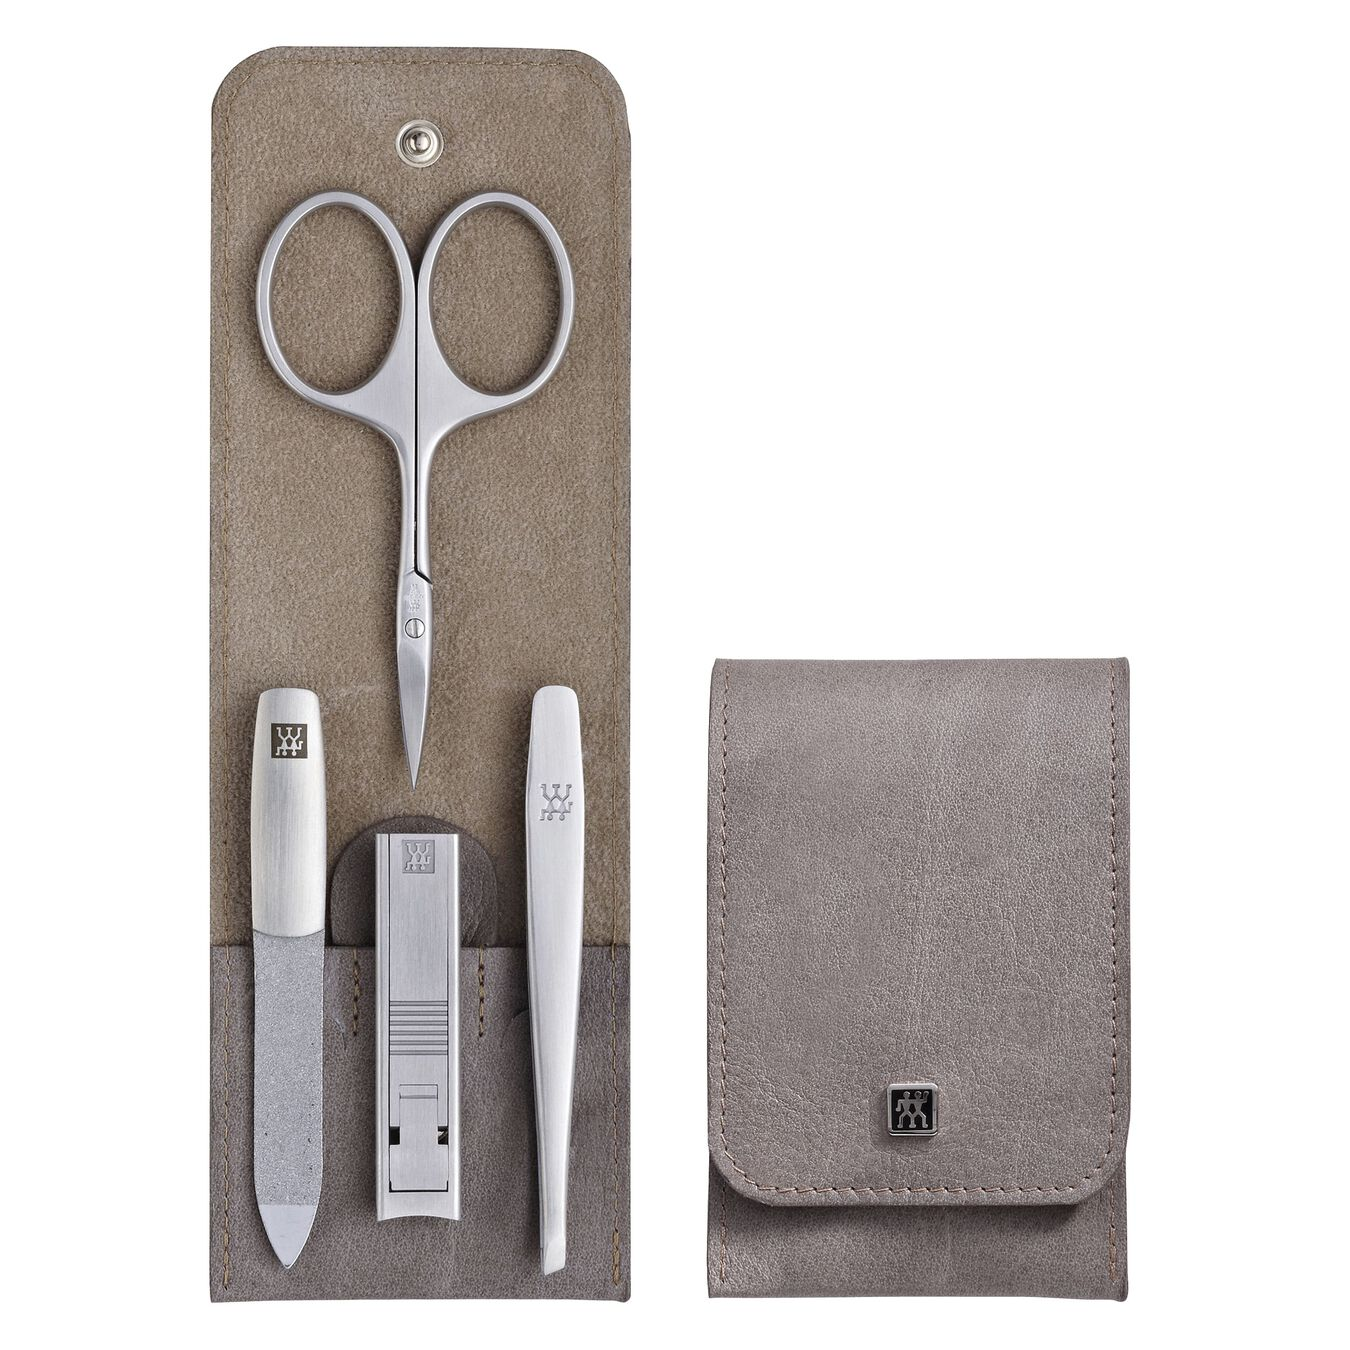 Snap fastener case, 4 Piece   stainless steel   taupe,,large 1